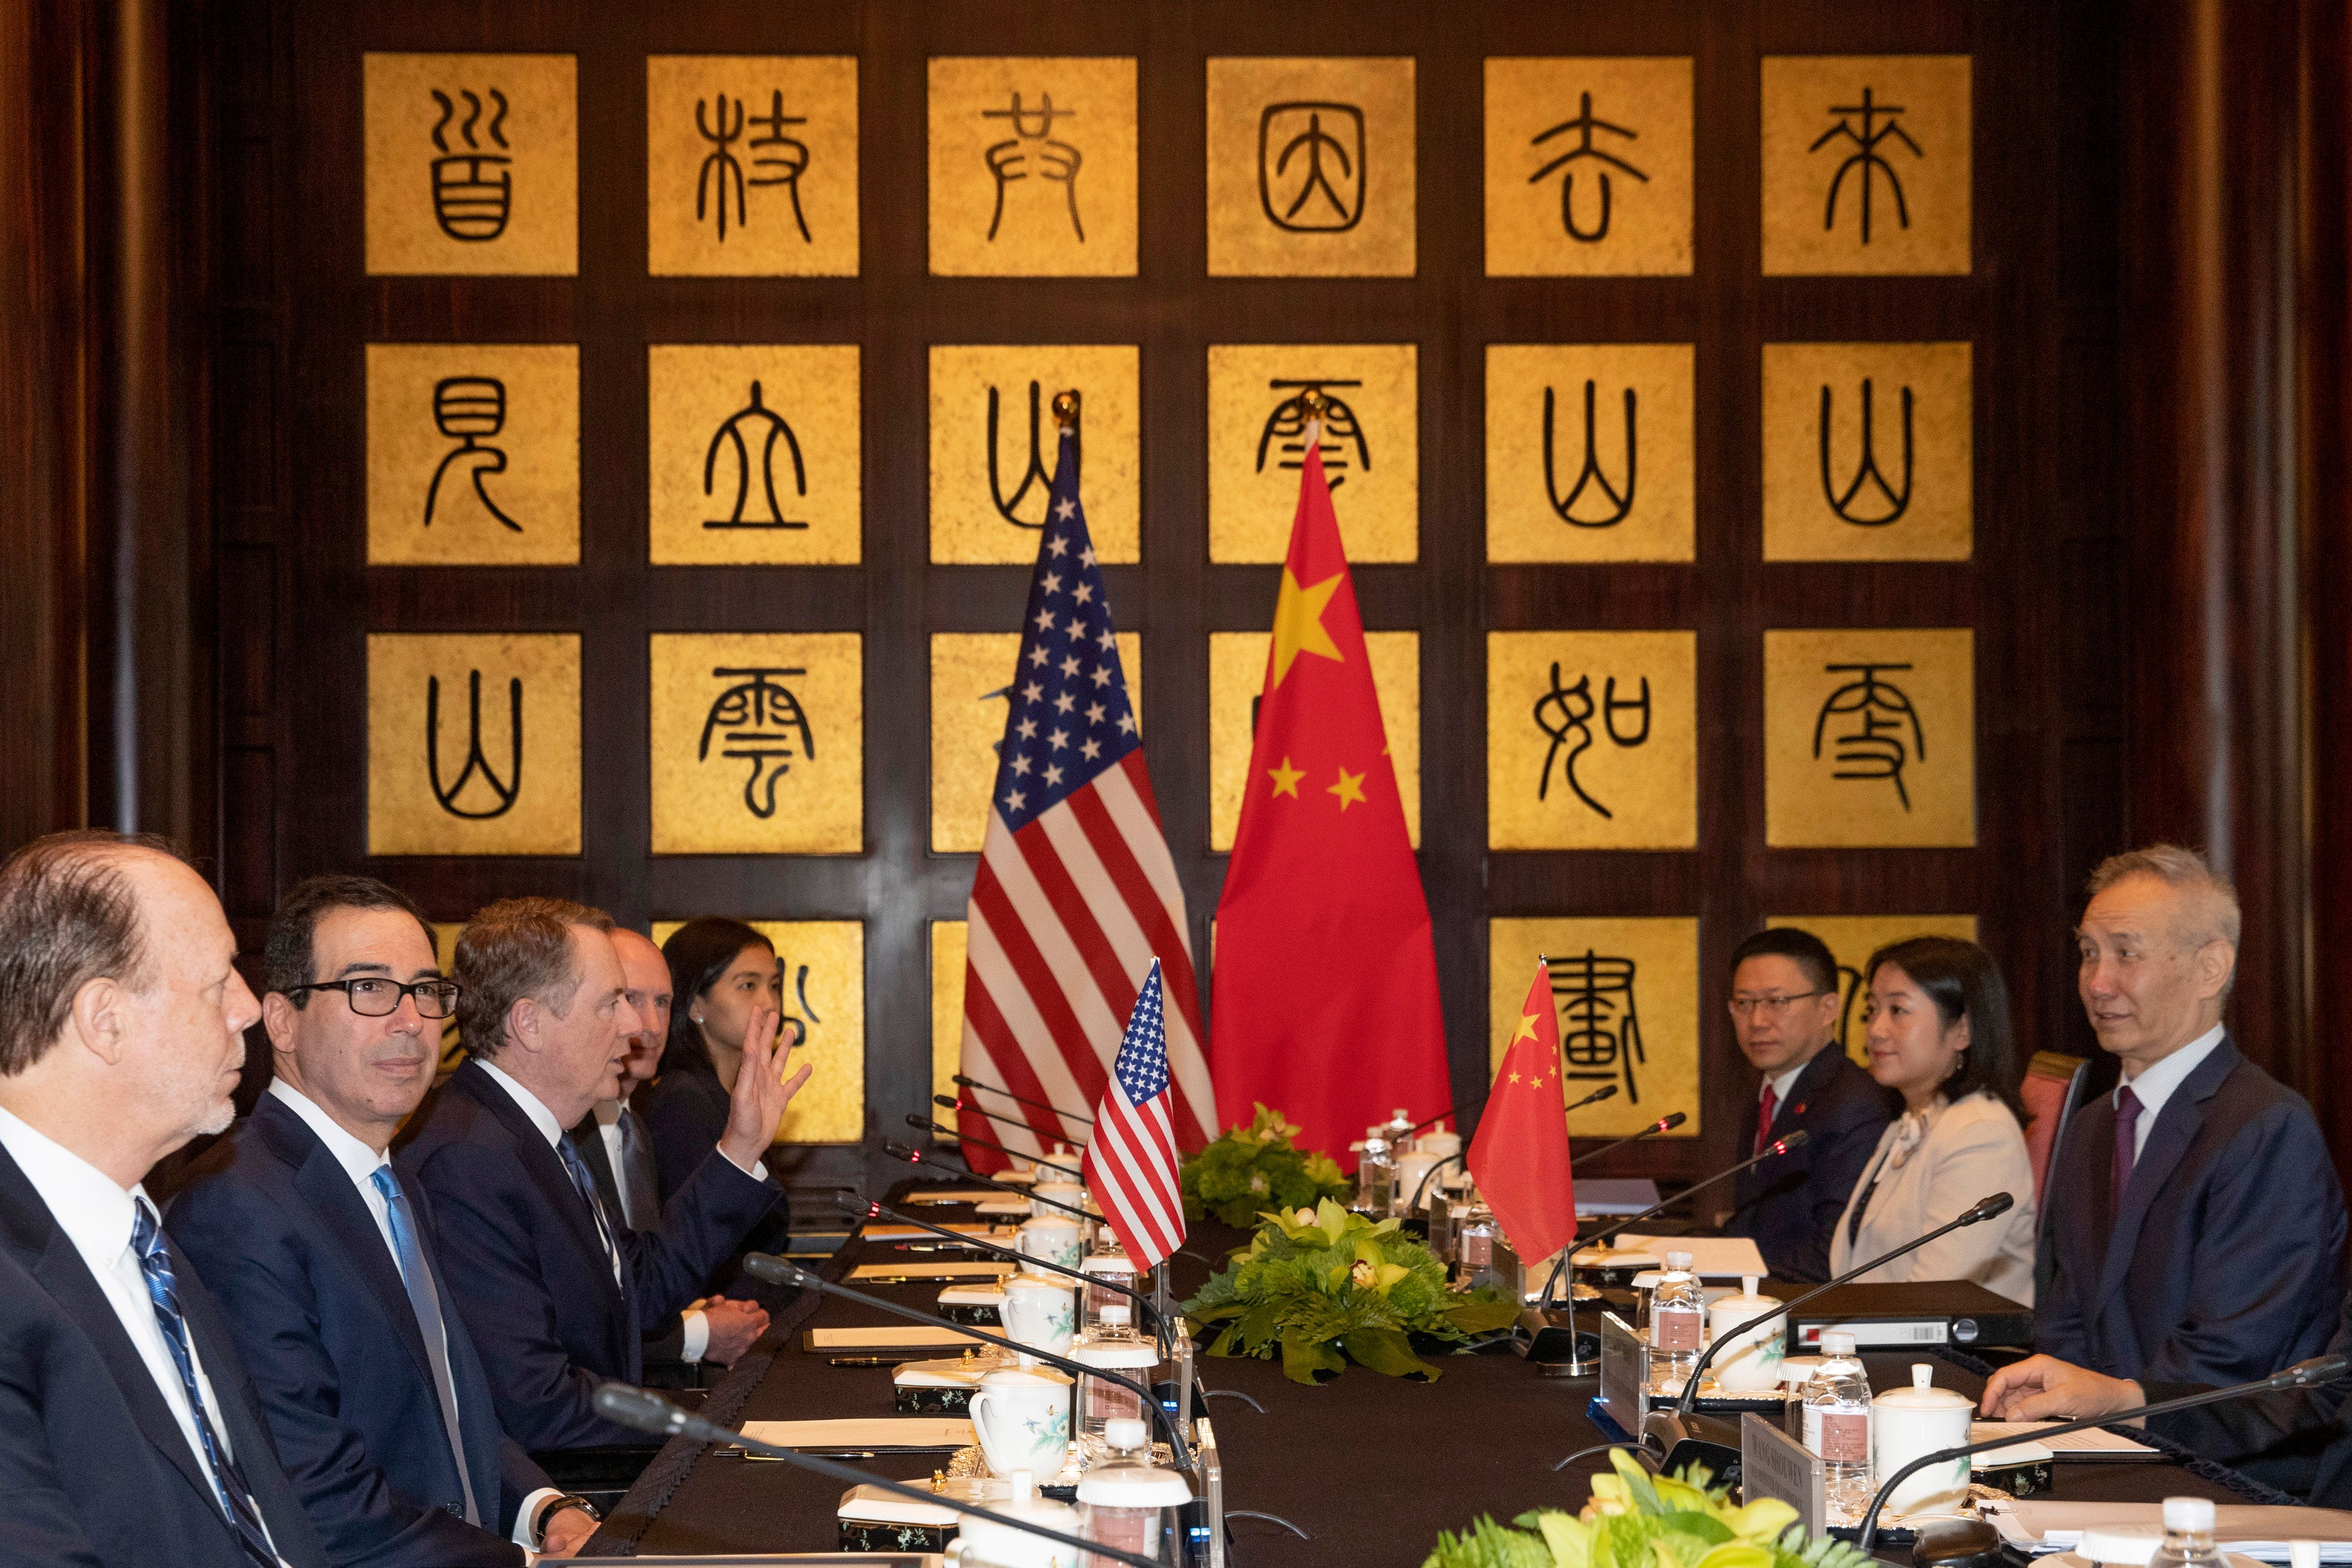 Chinese and American officials sit at a table.